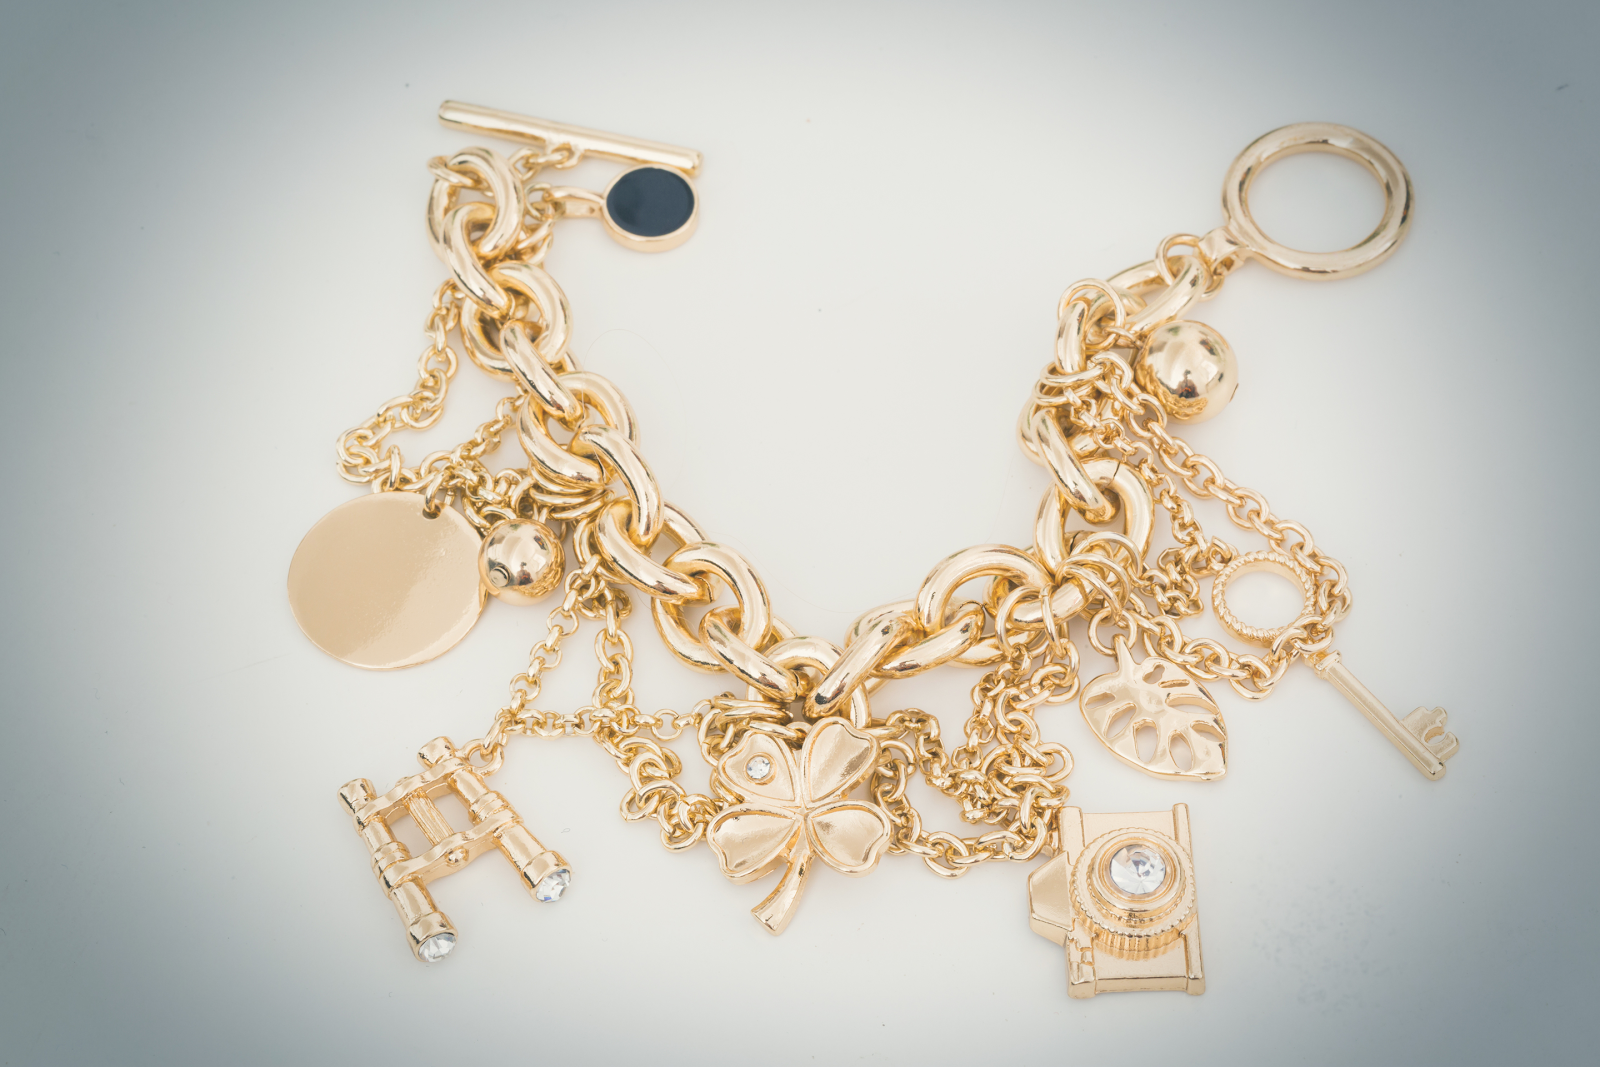 Gold Bracelet | 31 Most Popular Fashion Jewelry Trends For All Seasons